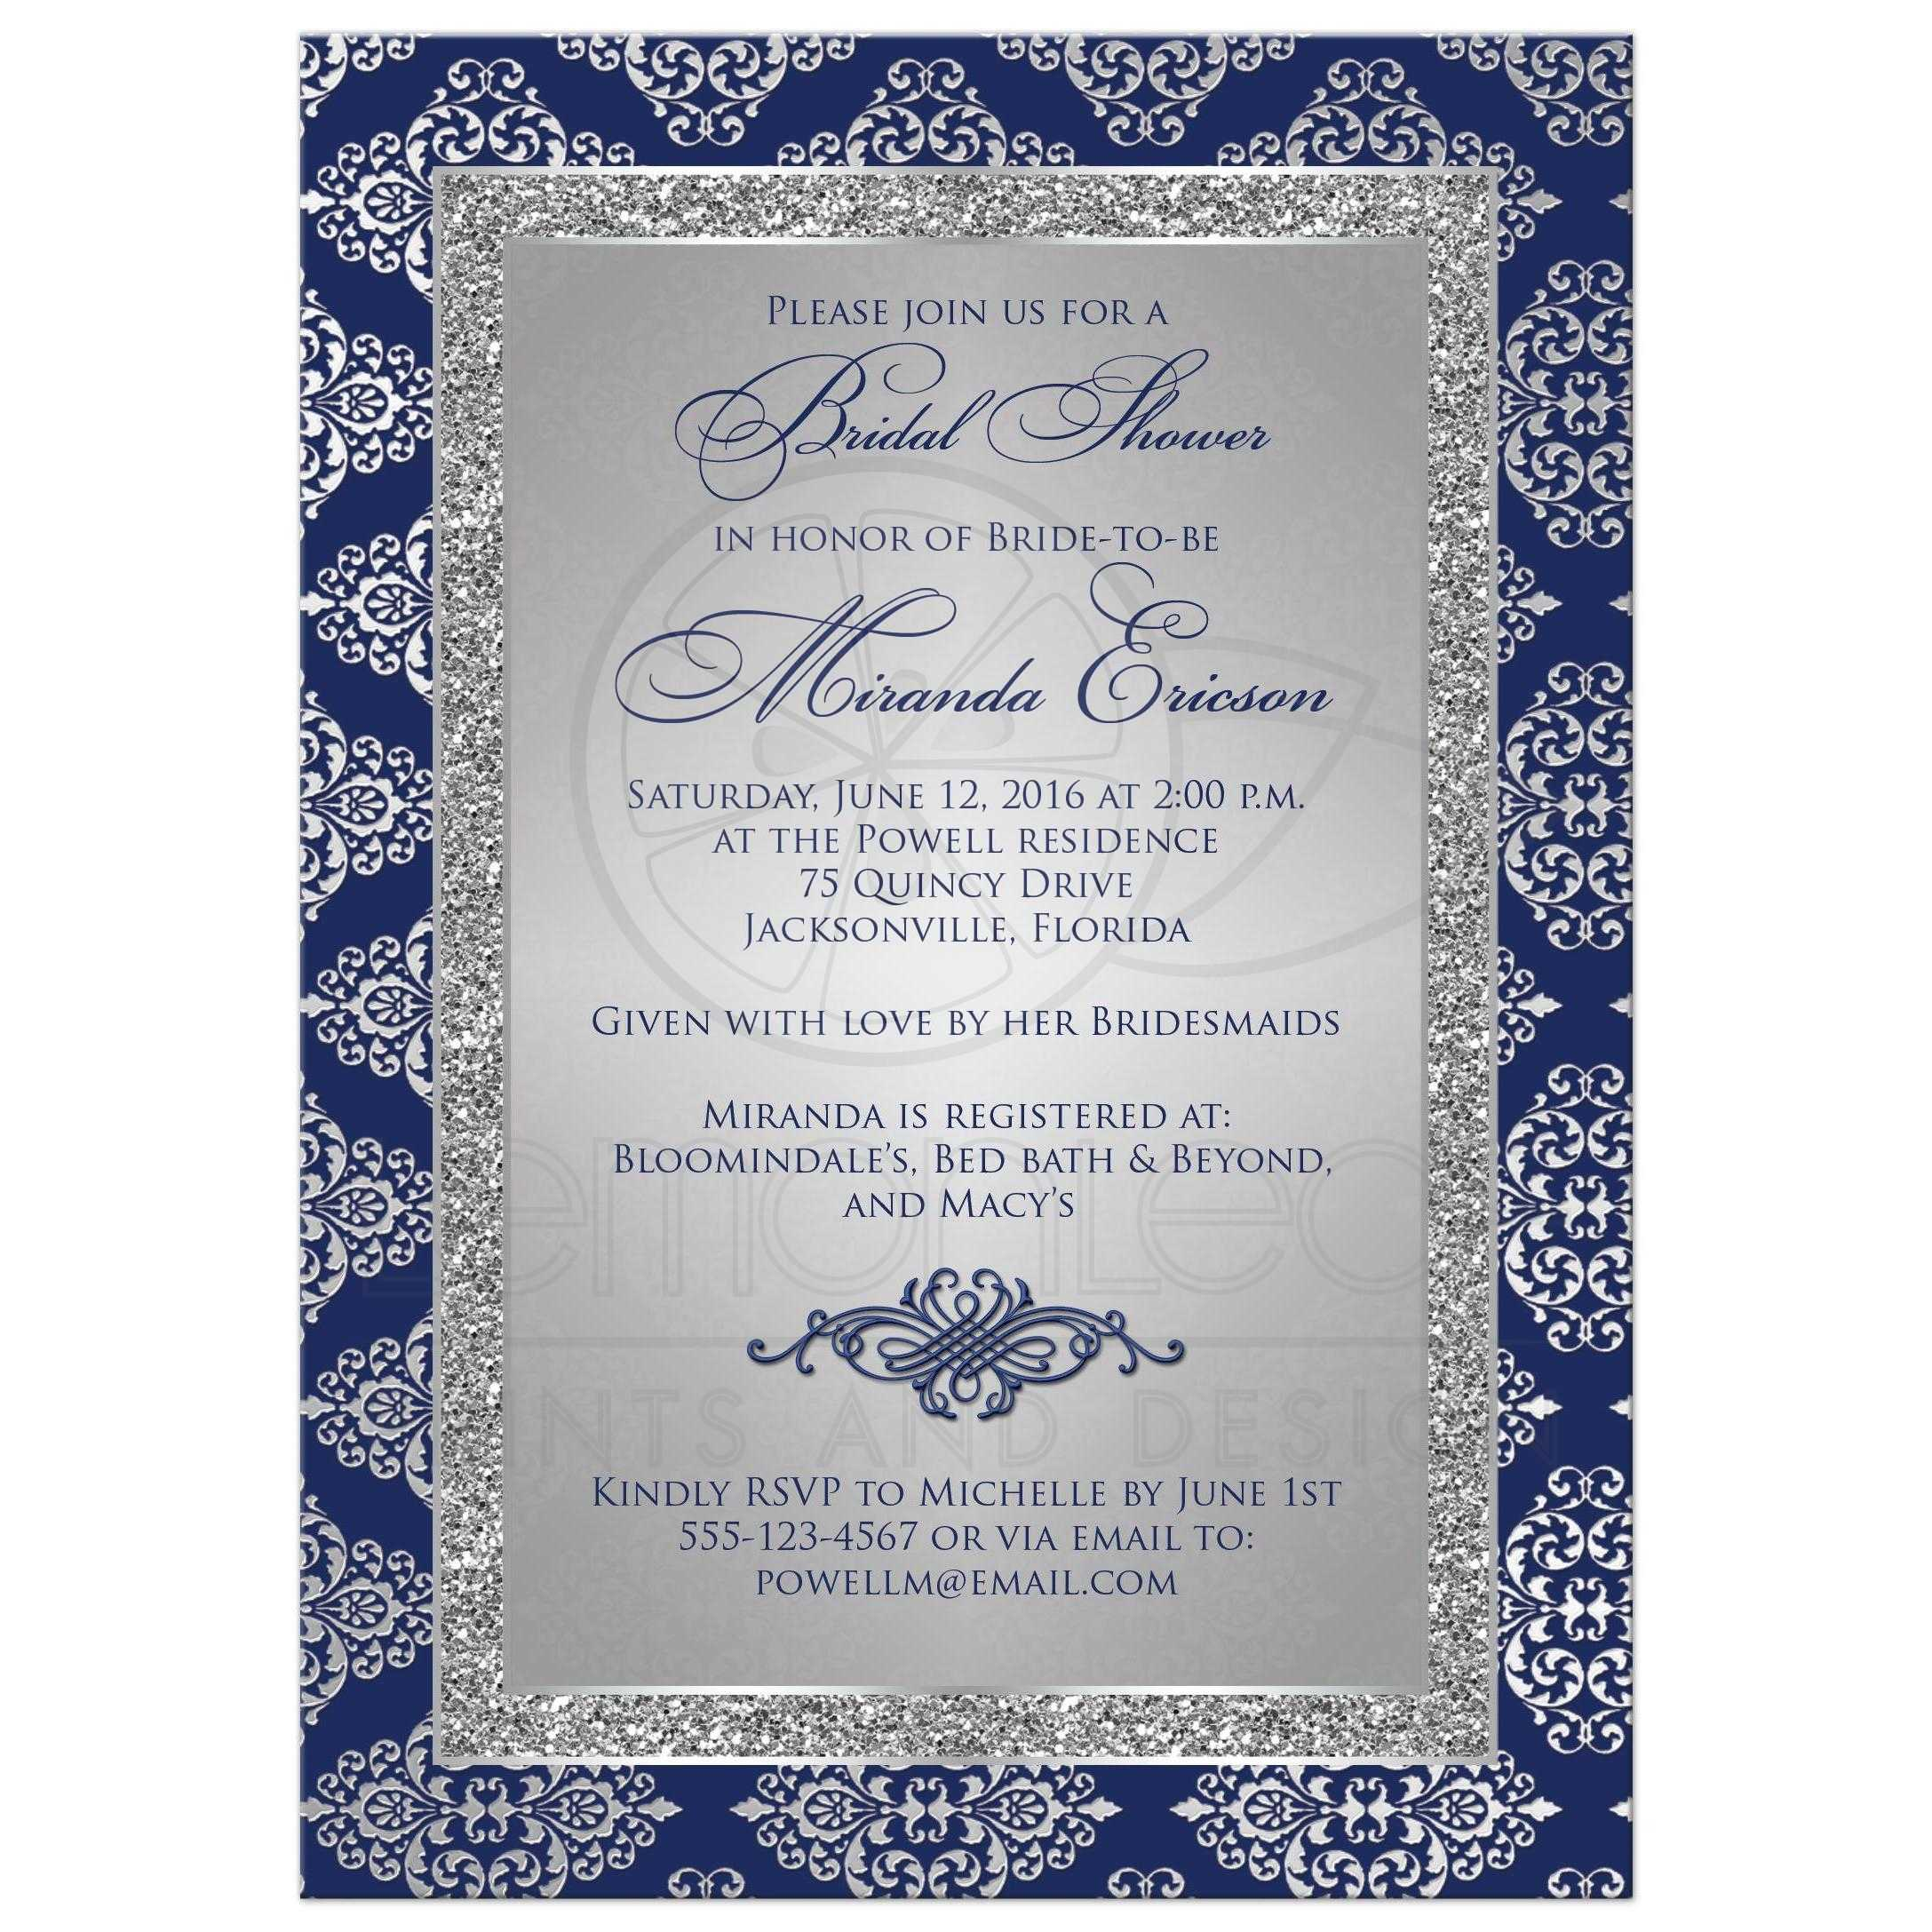 Bridal shower invitation navy blue silver gray damask faux best navy blue and silver grey bridal shower invitations filmwisefo